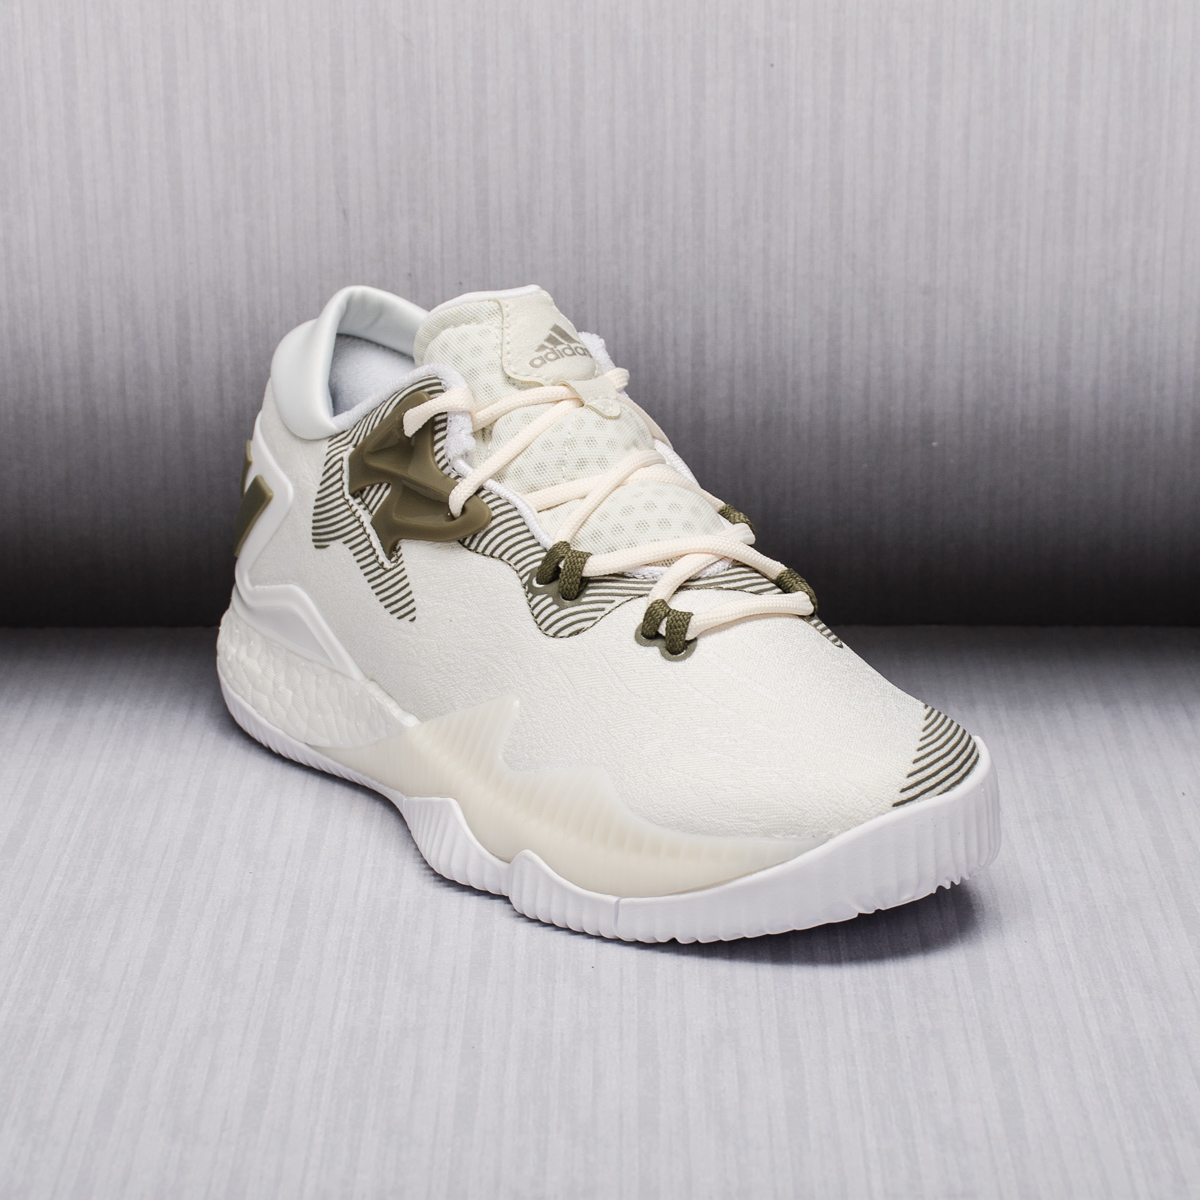 adidas Crazylight Boost 2016 Low BASKETBALL SHOES Adidas